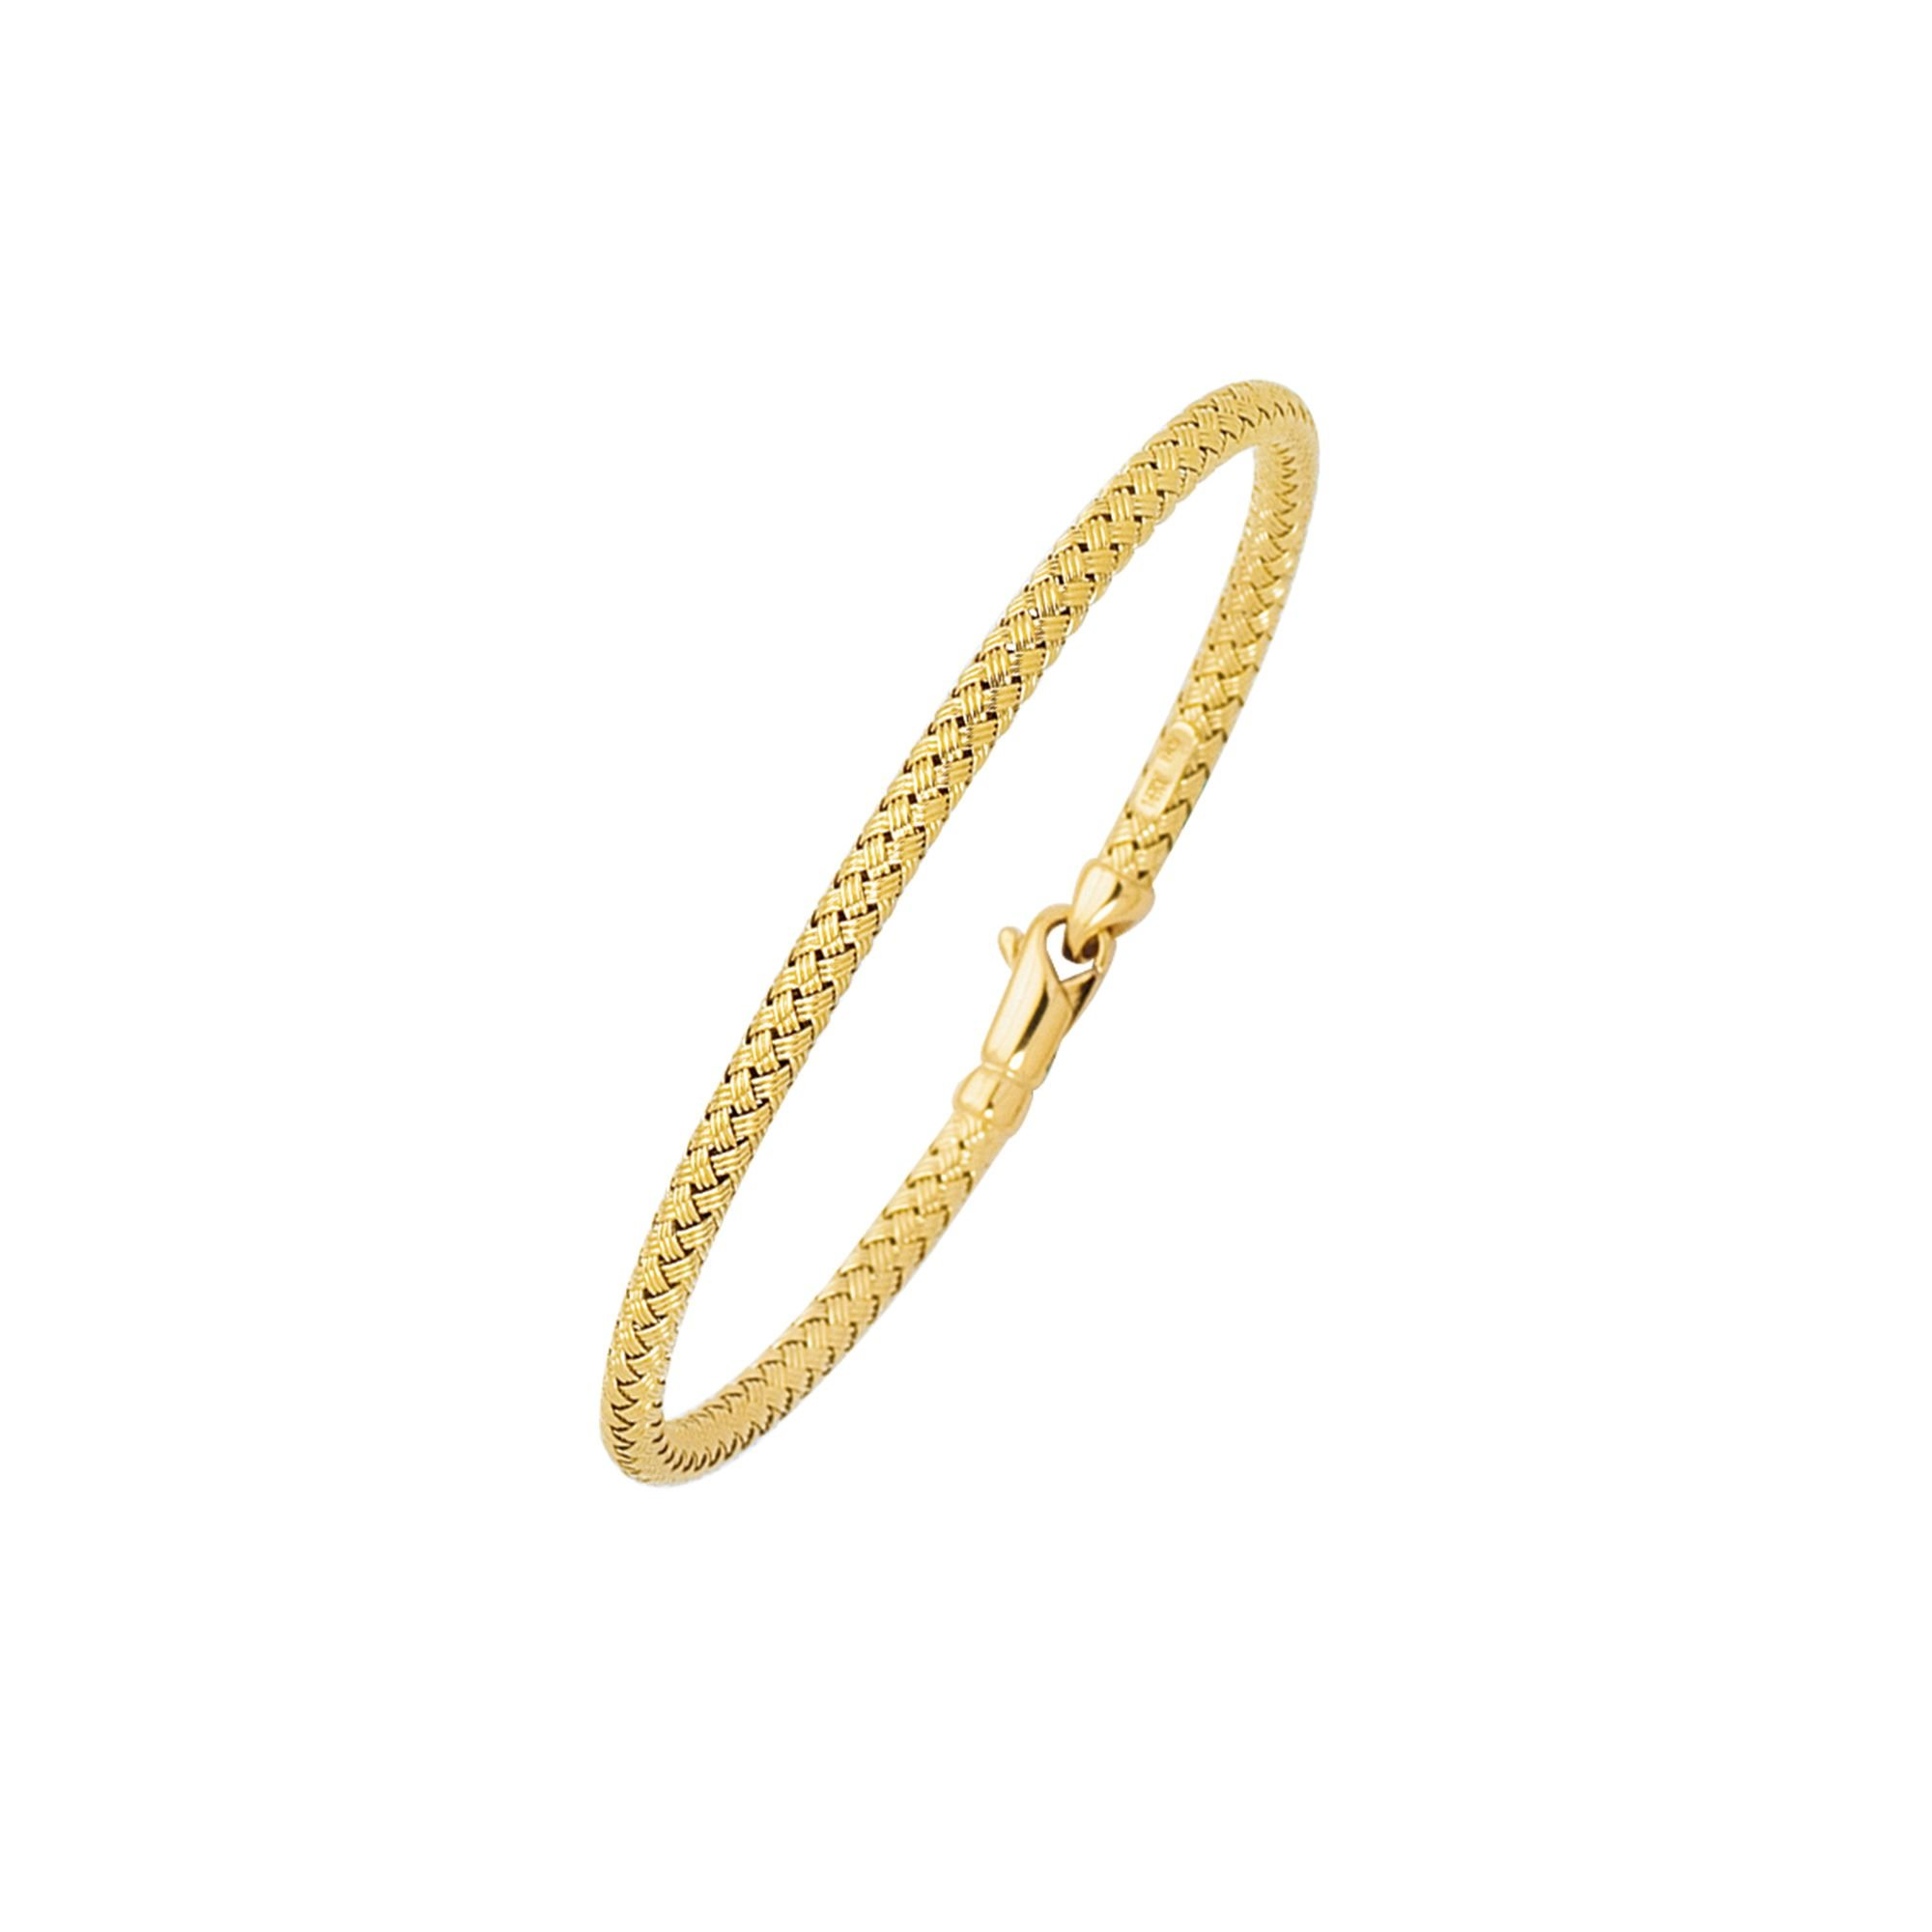 14K 7.25'' Yellow, White or Rose Gold Shiny Round Basket Weaved Bangle with Lobster Clasp (yellow-gold)